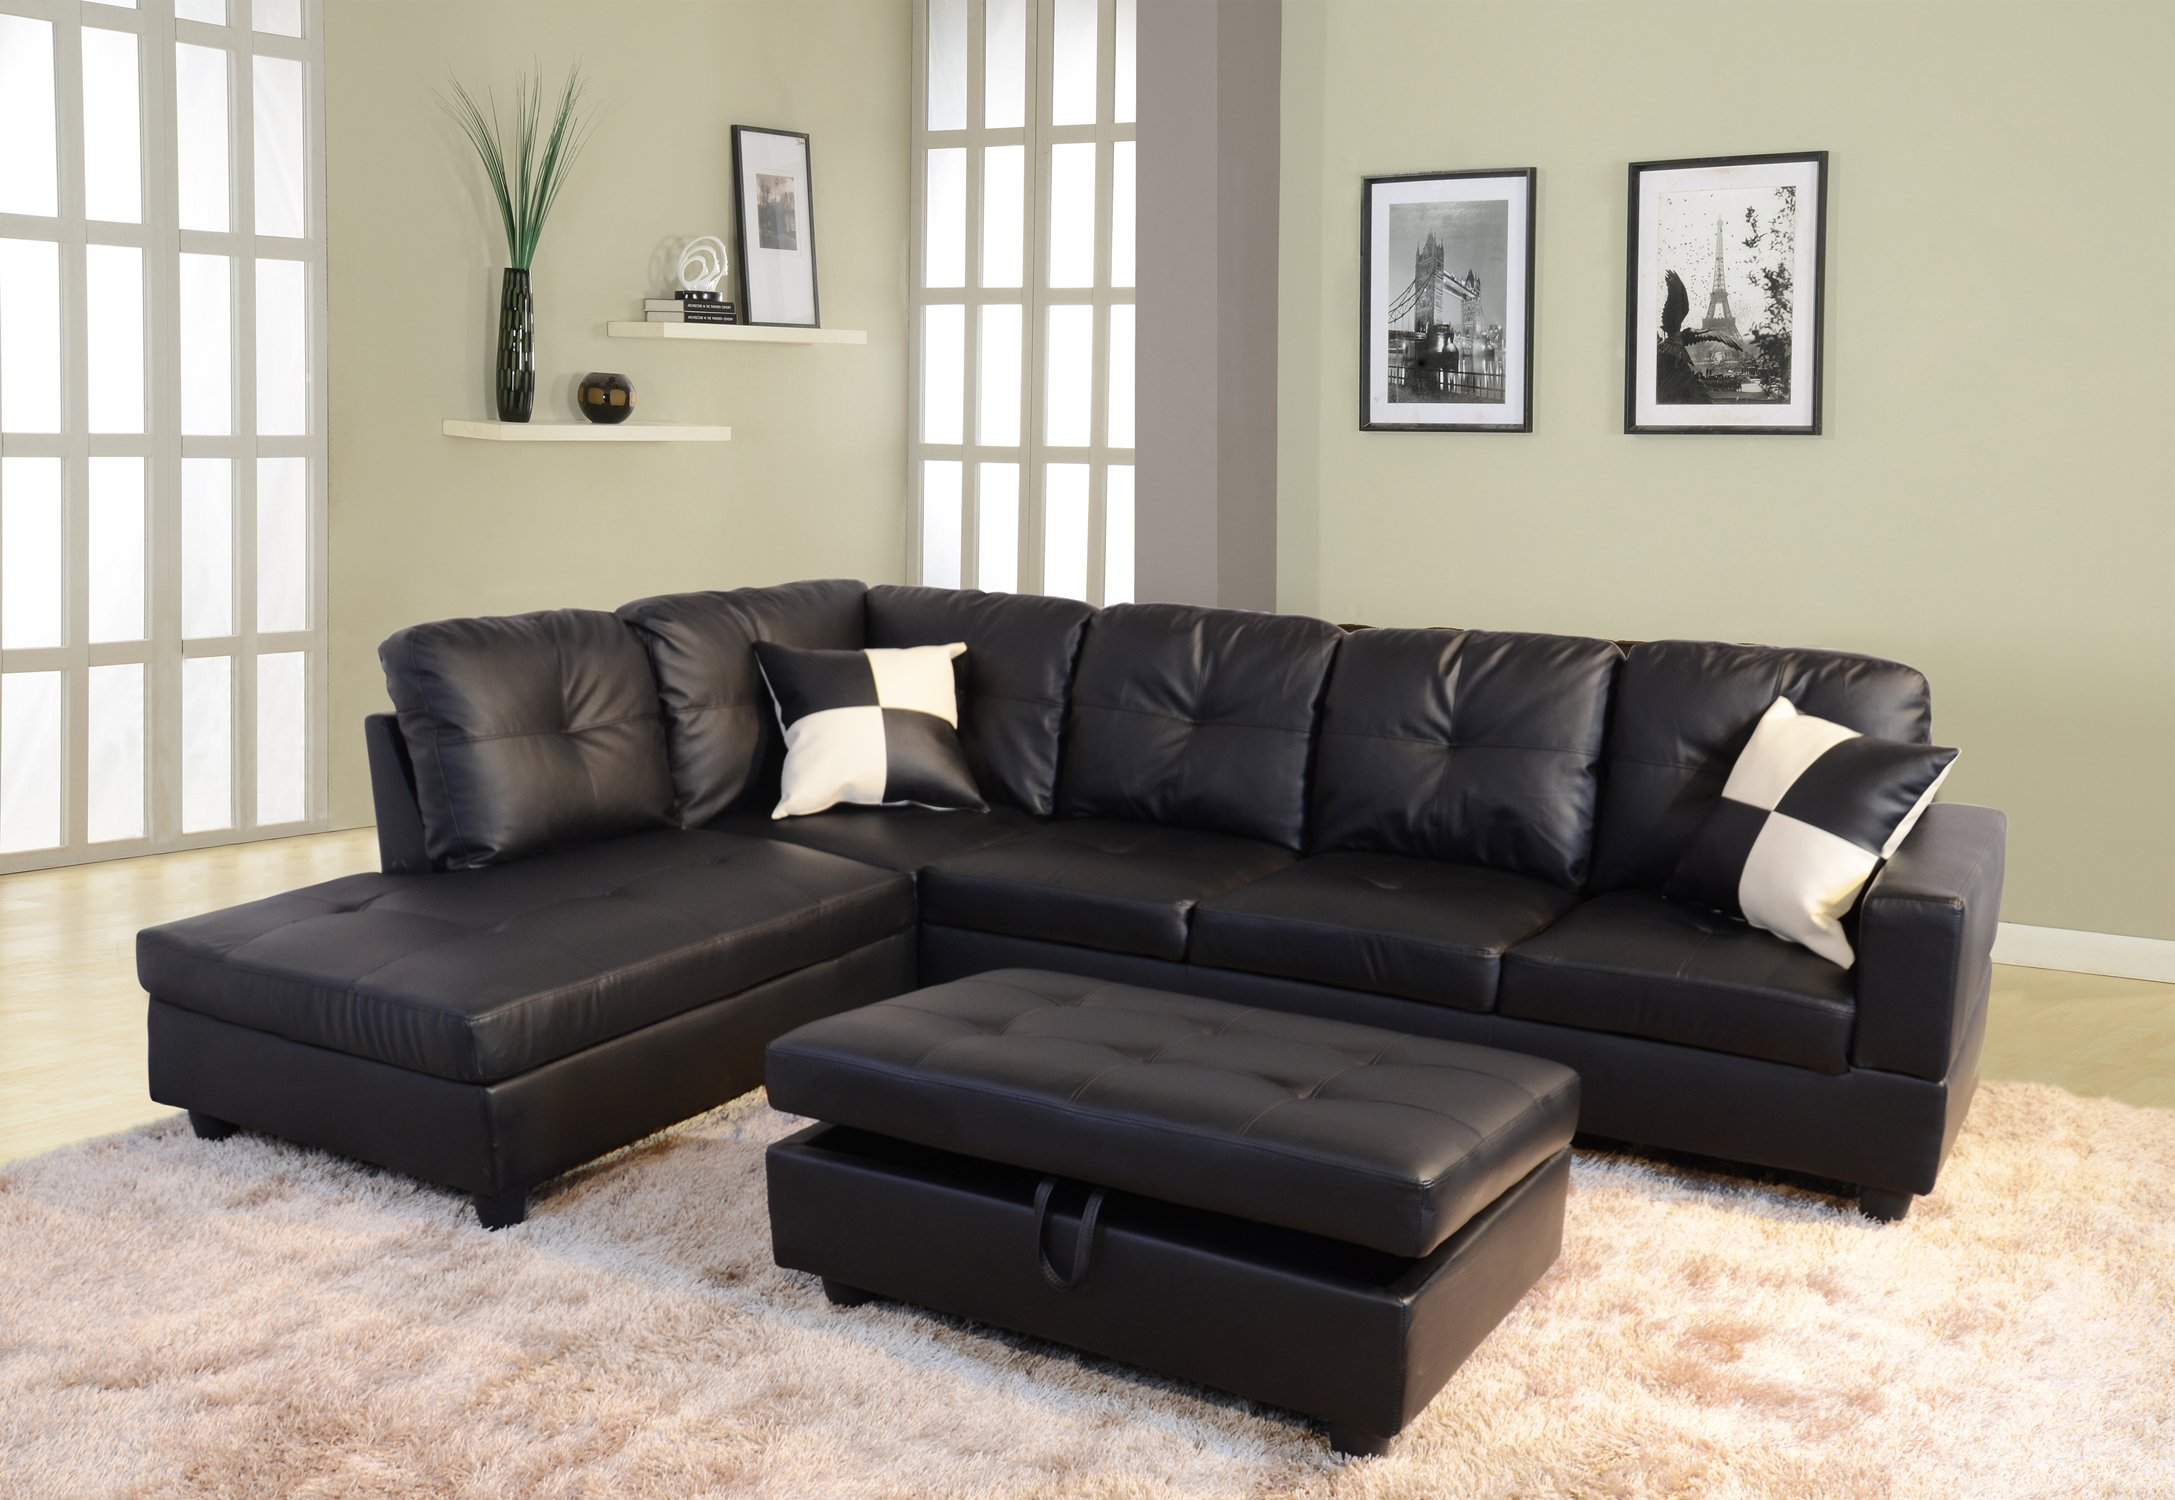 Lifestyle LSF091A-3PC Sectional Sofa Set by Lifestyle